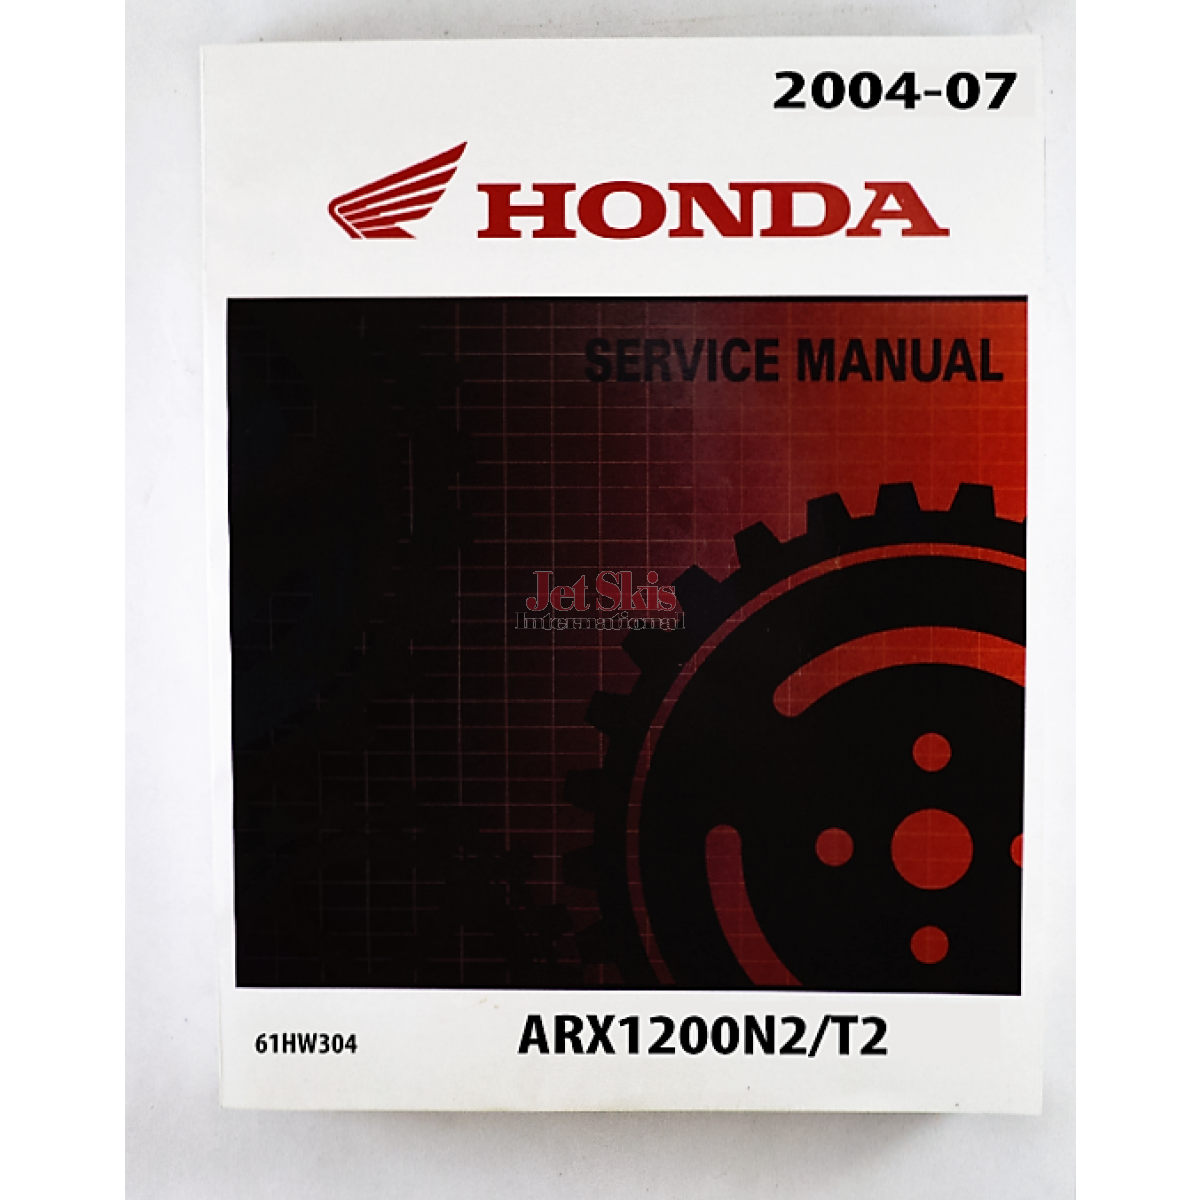 honda aquatrax r12 r12x service and shop manual 61hw304 jet skis rh jetskisint com